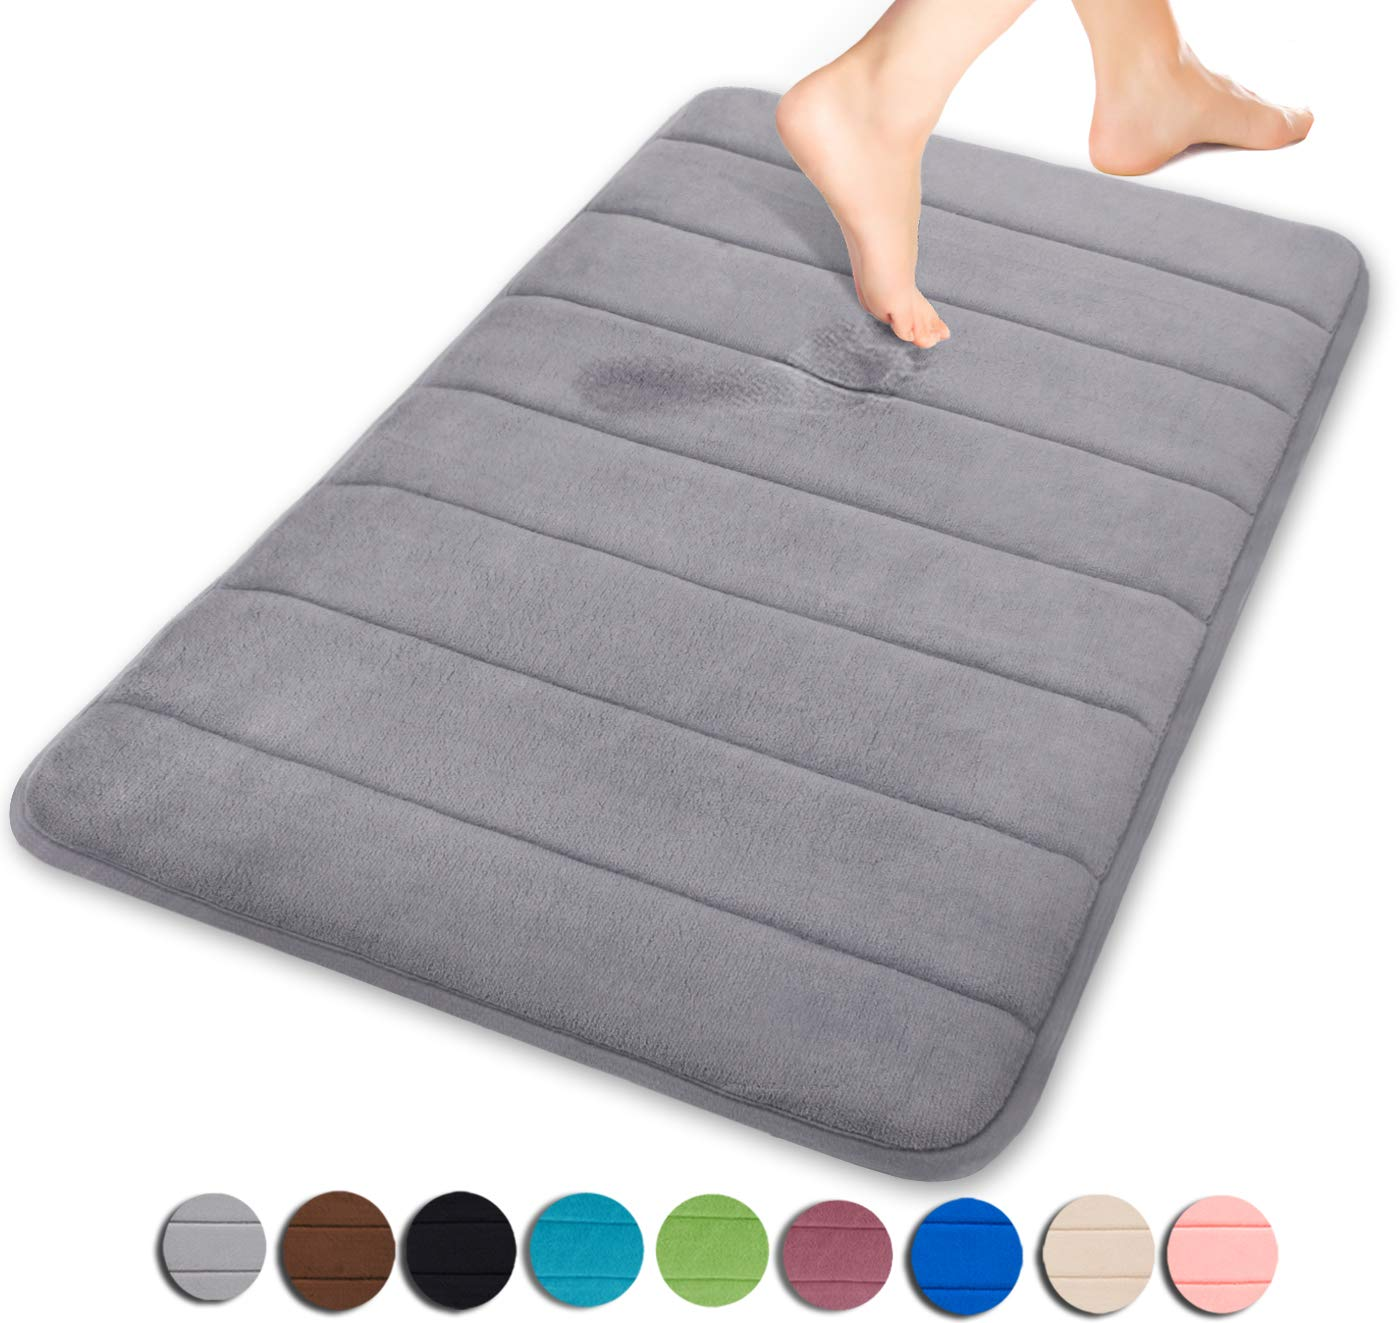 Charmant Yimobra Original Memory Foam Bath Mat Large Size 31.5 By 19.8 Inch,Maximum  Absorbent,Soft,Comfortable,Non Slip,Thick,Machine Wash,Easier To Dry For  Bathroom ...